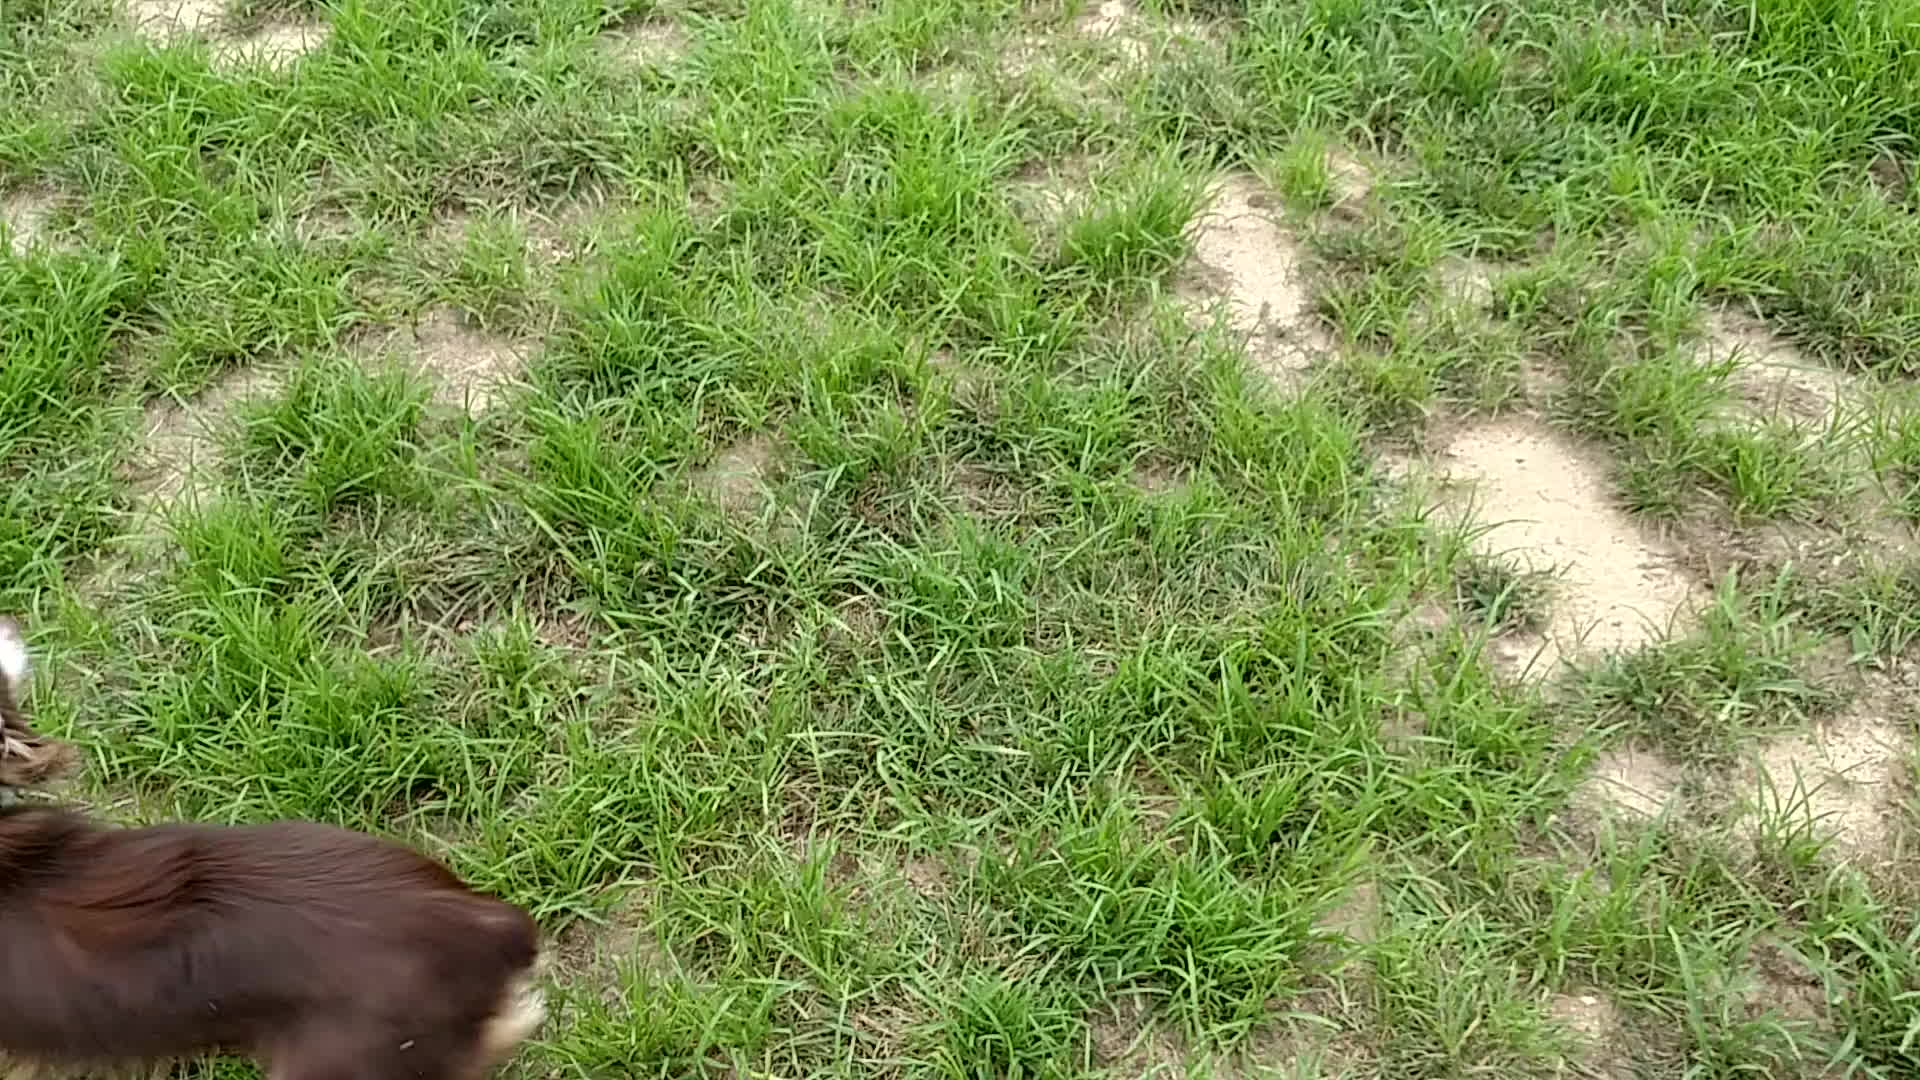 animalsbeingderps, wigglebutts, Just throw it already! GIFs